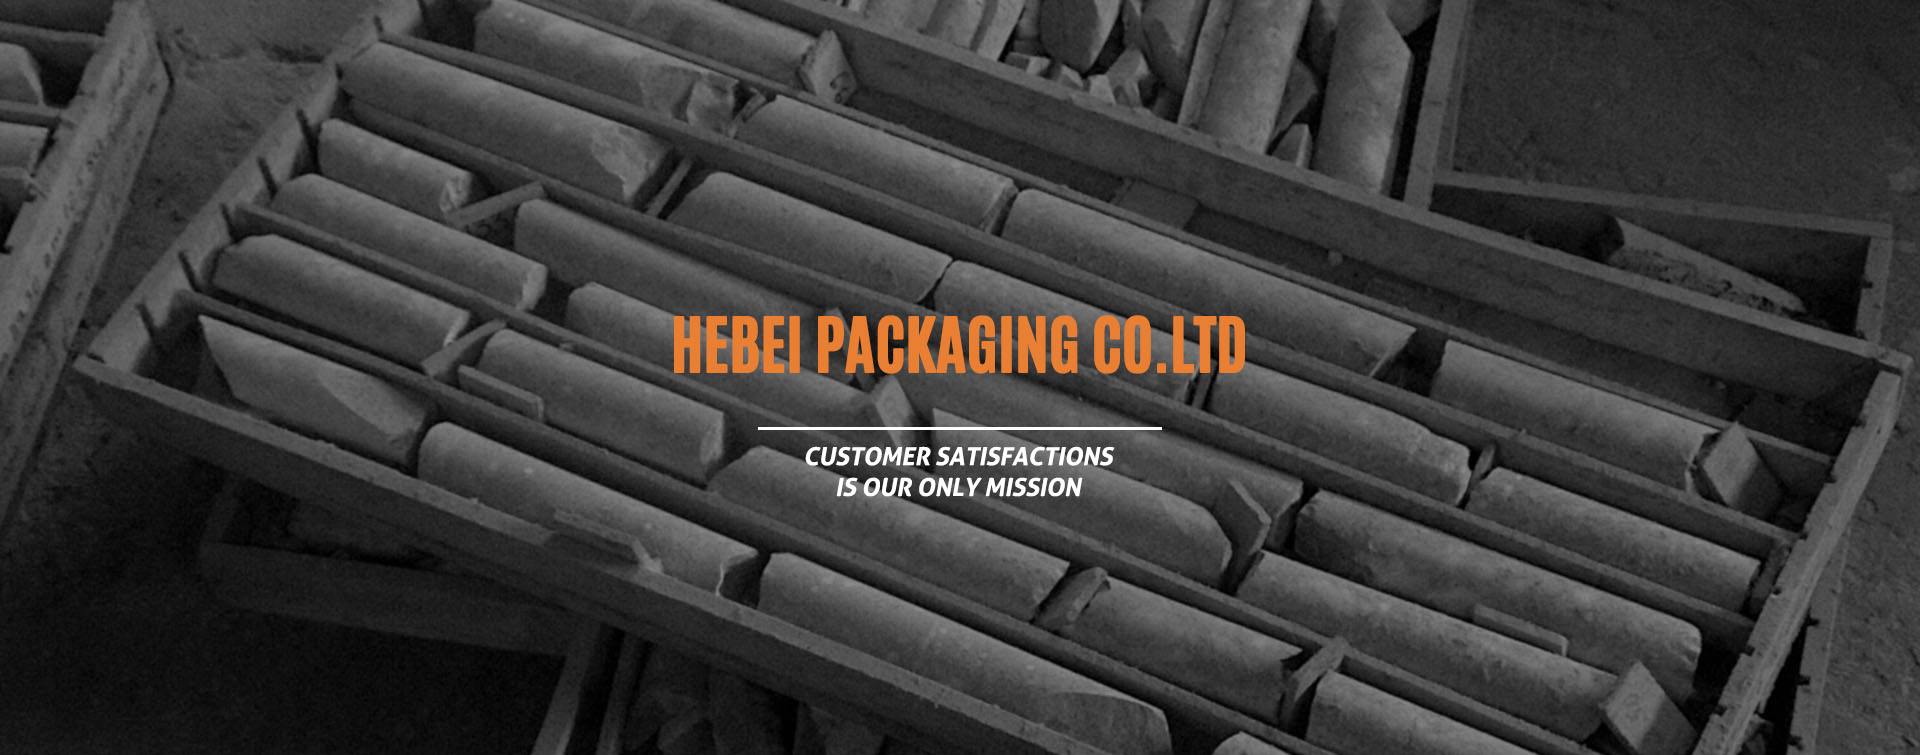 Compound packaging products  industry famous enterprises